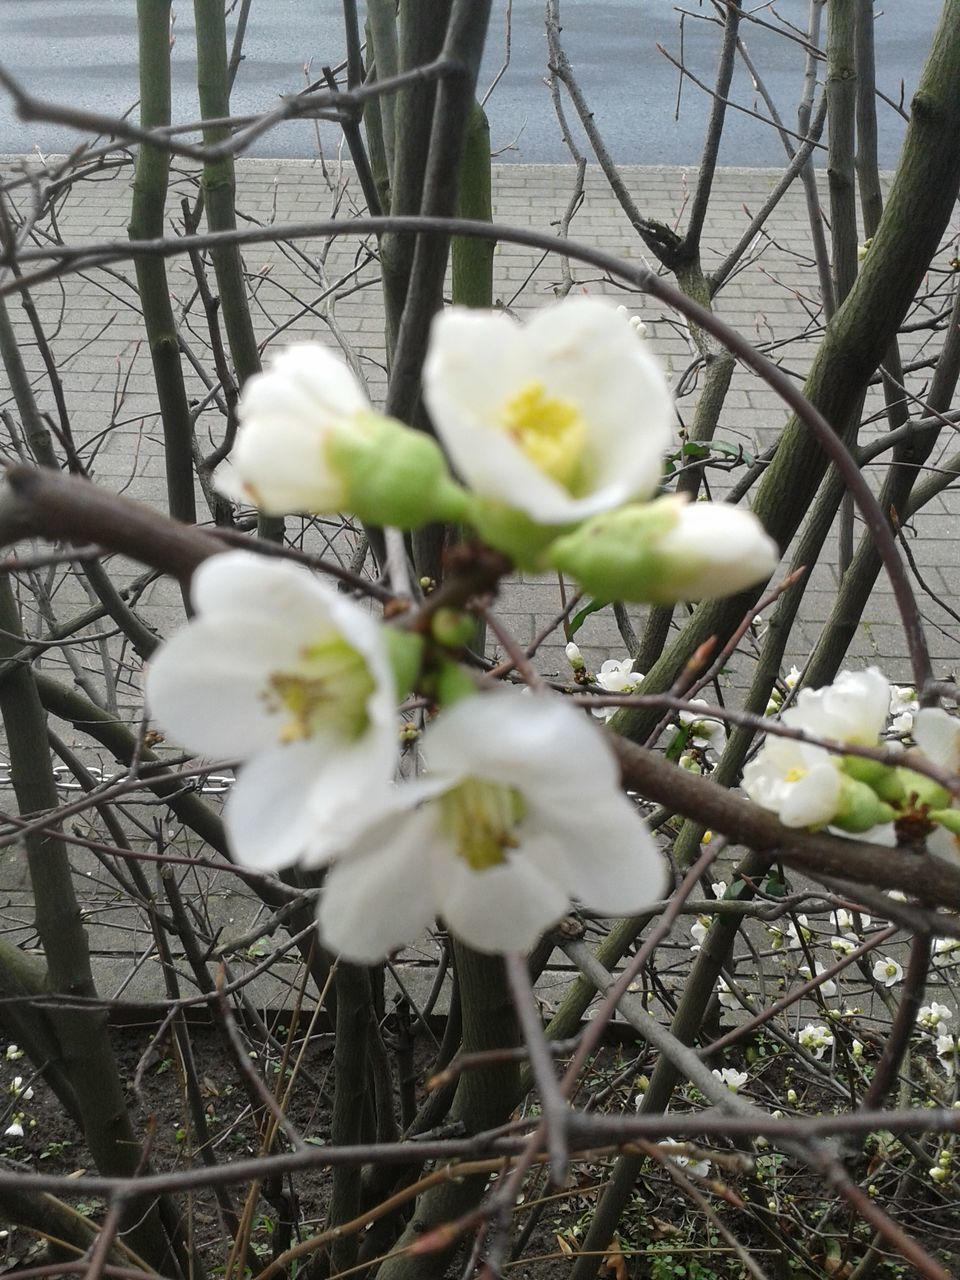 growth, flower, white color, blossom, nature, beauty in nature, fragility, tree, branch, springtime, twig, freshness, day, no people, outdoors, close-up, blooming, flower head